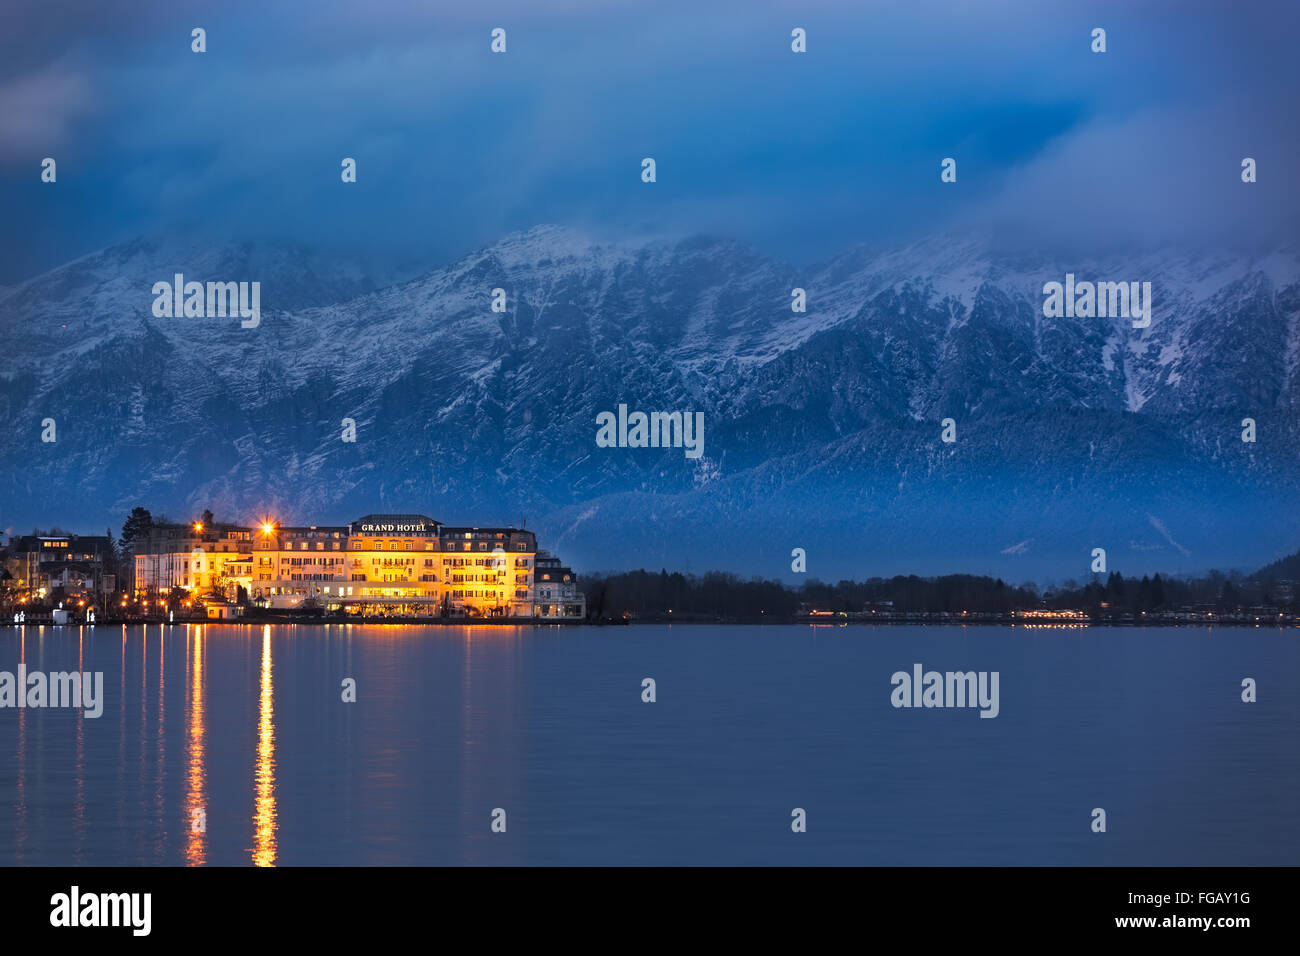 """ZELL AM SEE, AUSTRIA - JANUARY 05, 2016 - Grand Hotel in front of Steinernes Meer (""""Rocky Sea"""") mountain range at Stock Photo"""